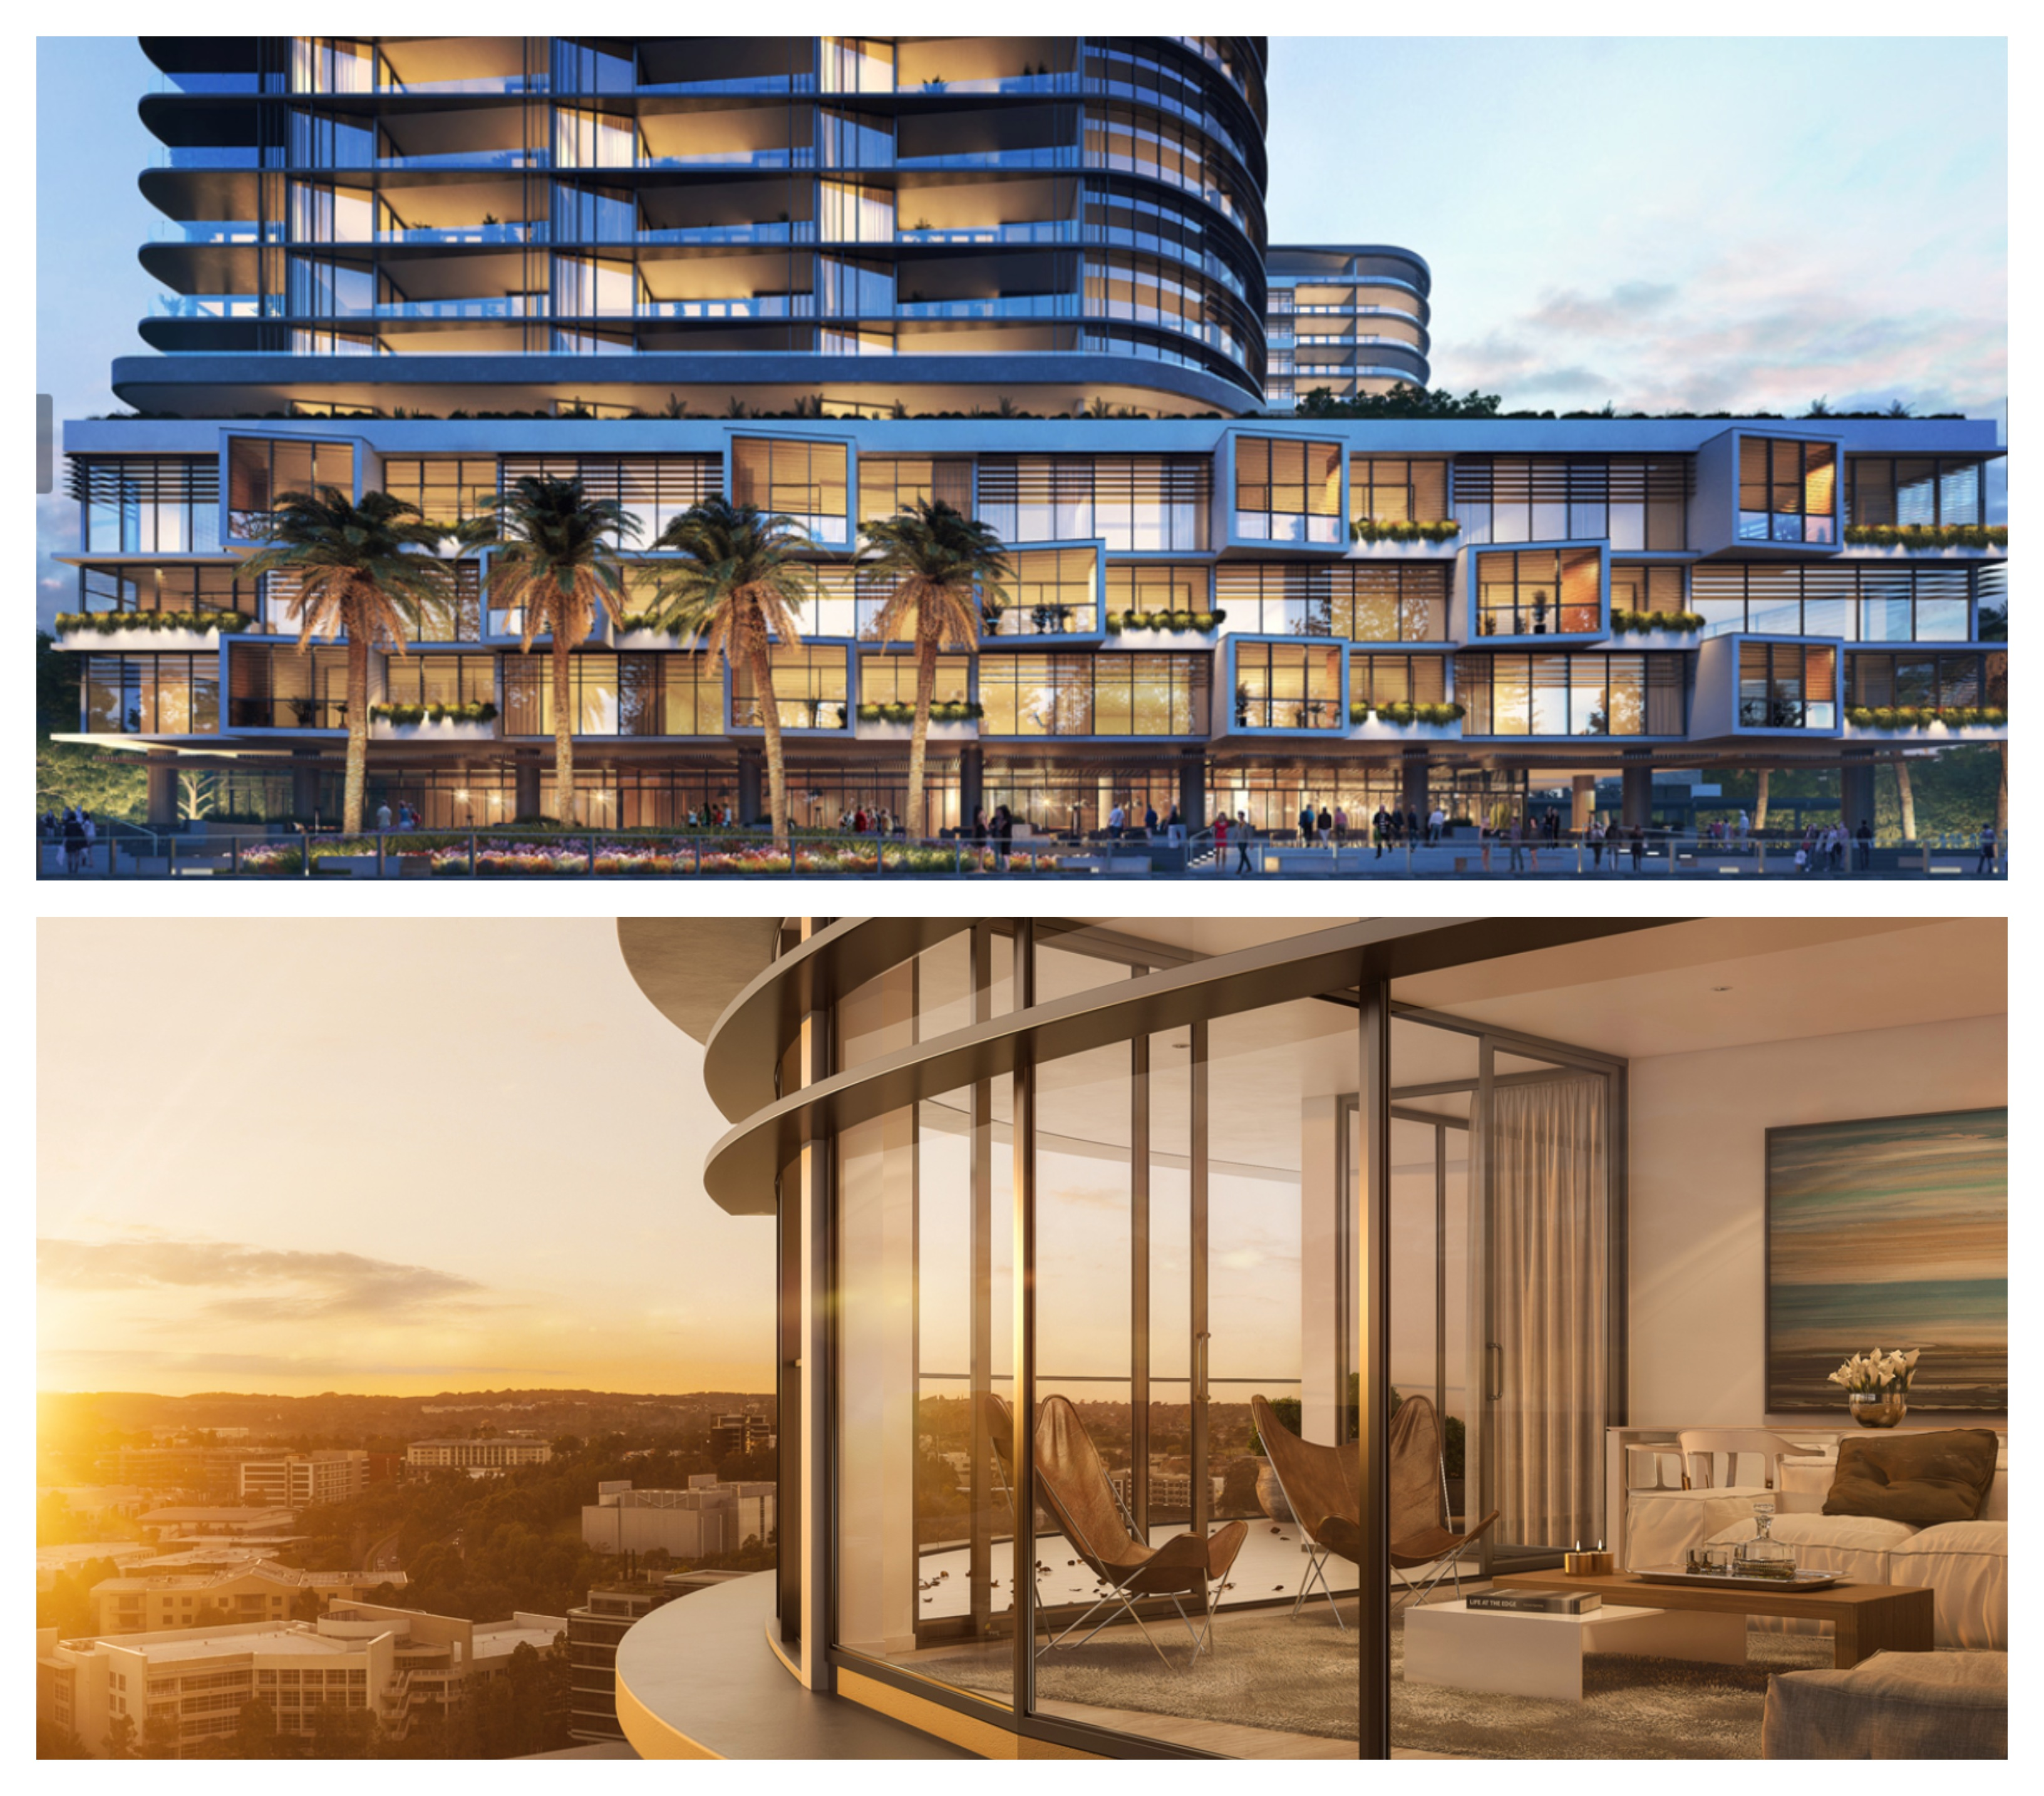 The 252-apartment, retail, and commercial Esplanade Norwest in Baulkham Hills.